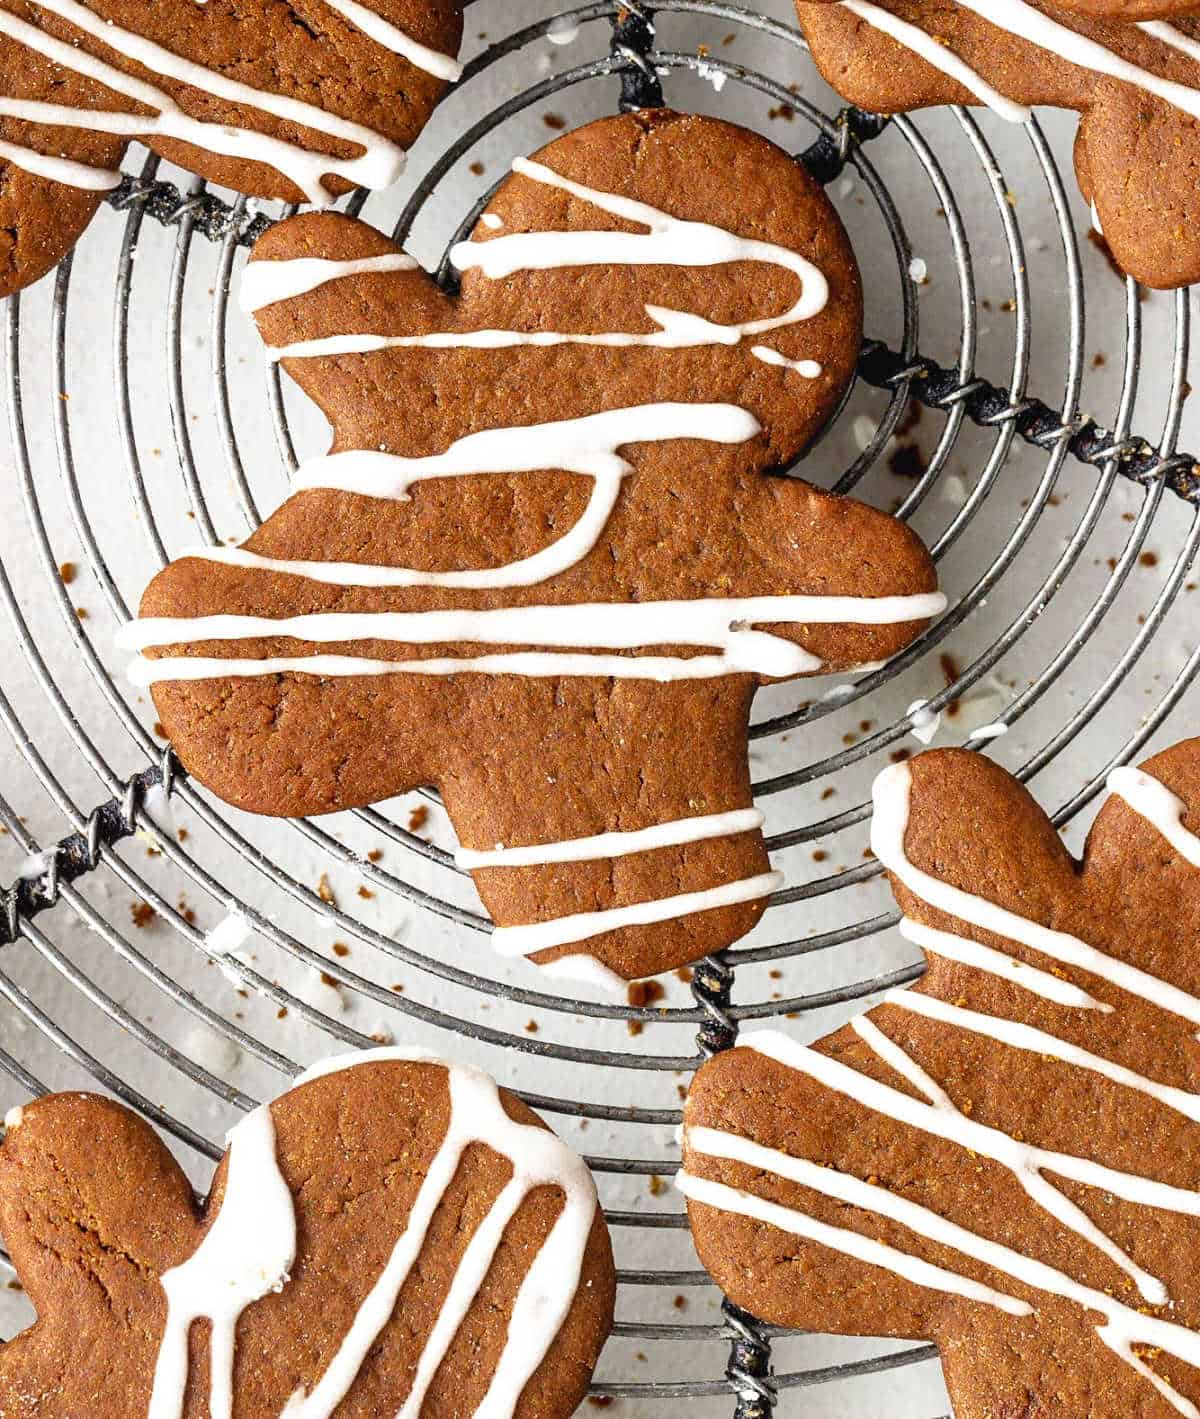 Close up aerial view of iced gingerbread people on a metal wire rack